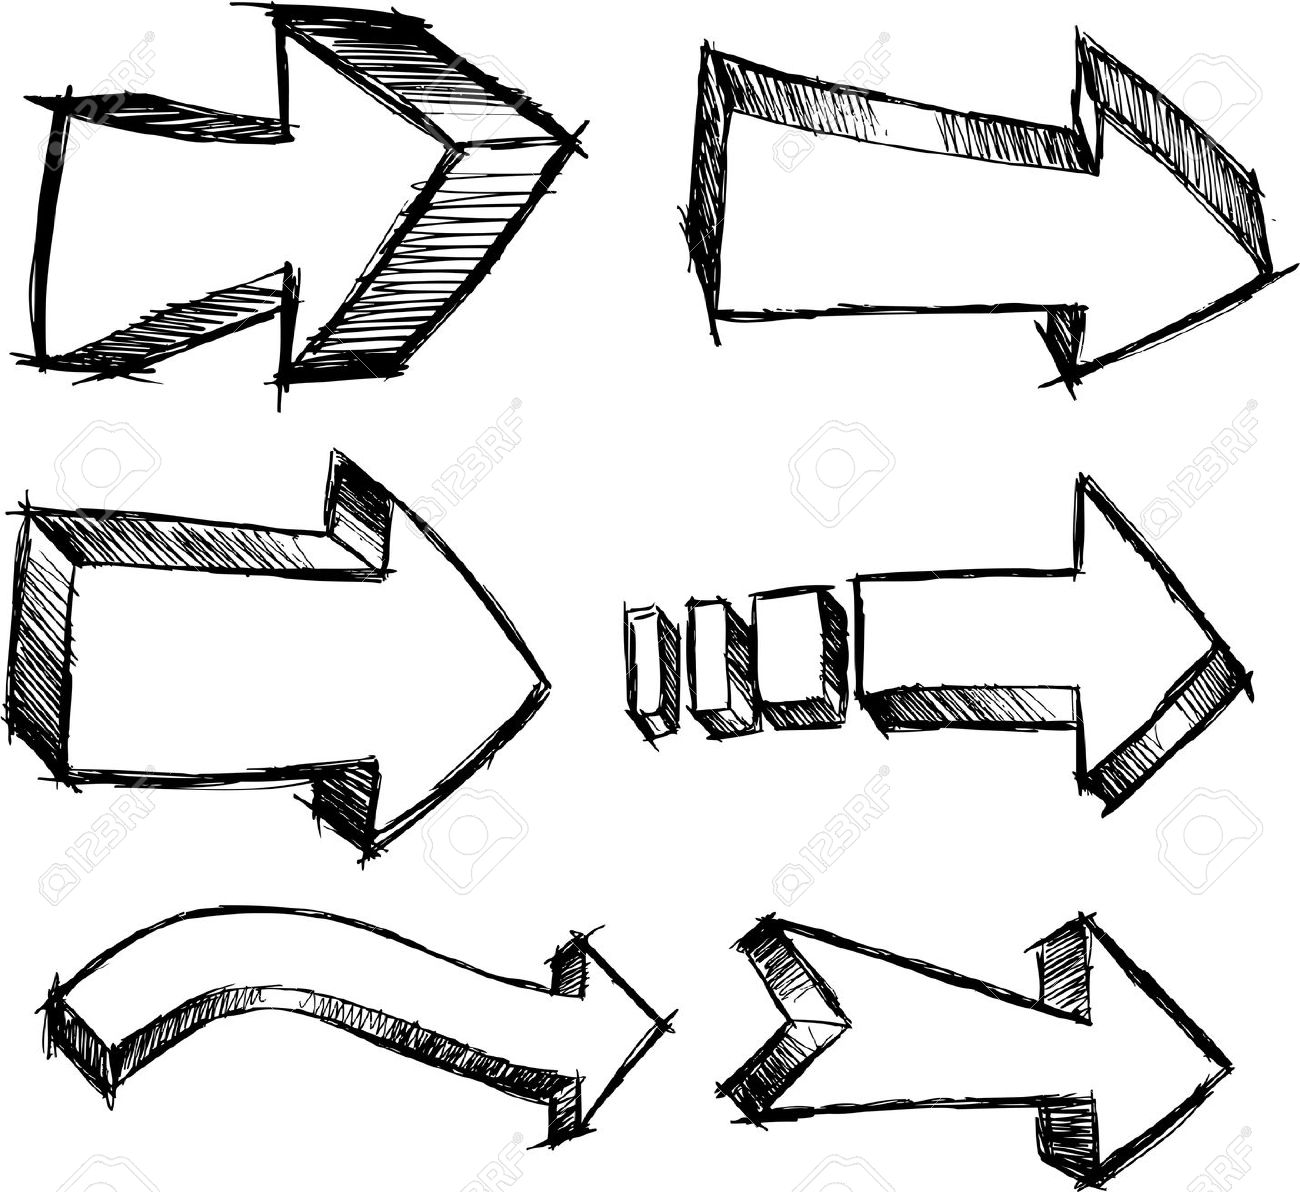 Arrows clipart sketch.  collection of doodle